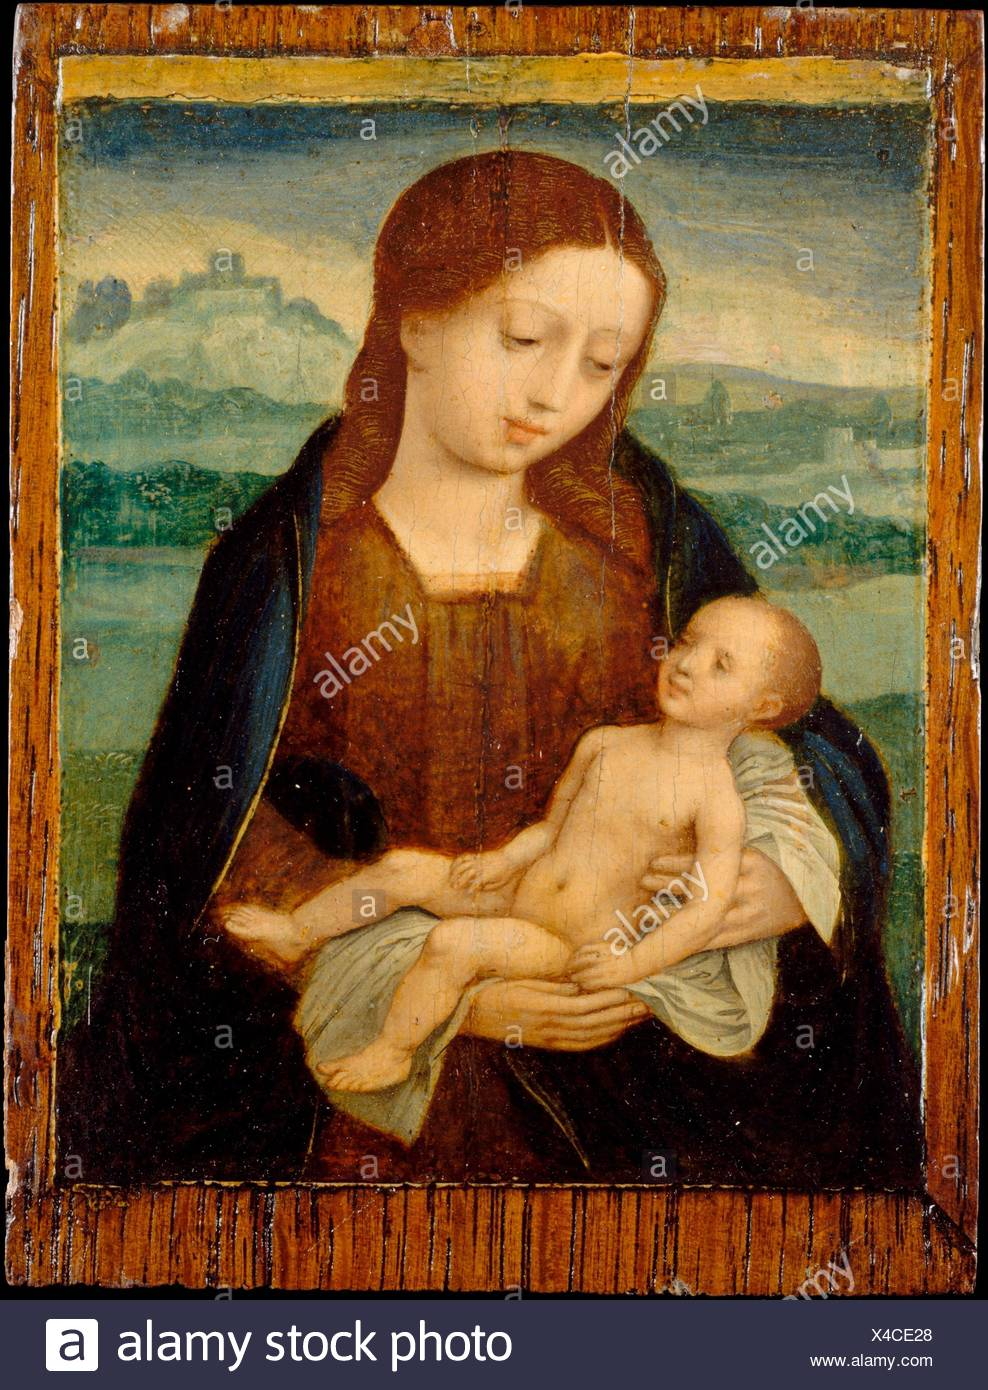 Virgin and Child. Artist: Master of the Female Half-Lengths (Netherlandish, active ca. 1525-50); Date: ca. 1525-50; Culture: Netherlandish; Medium: - Stock Image